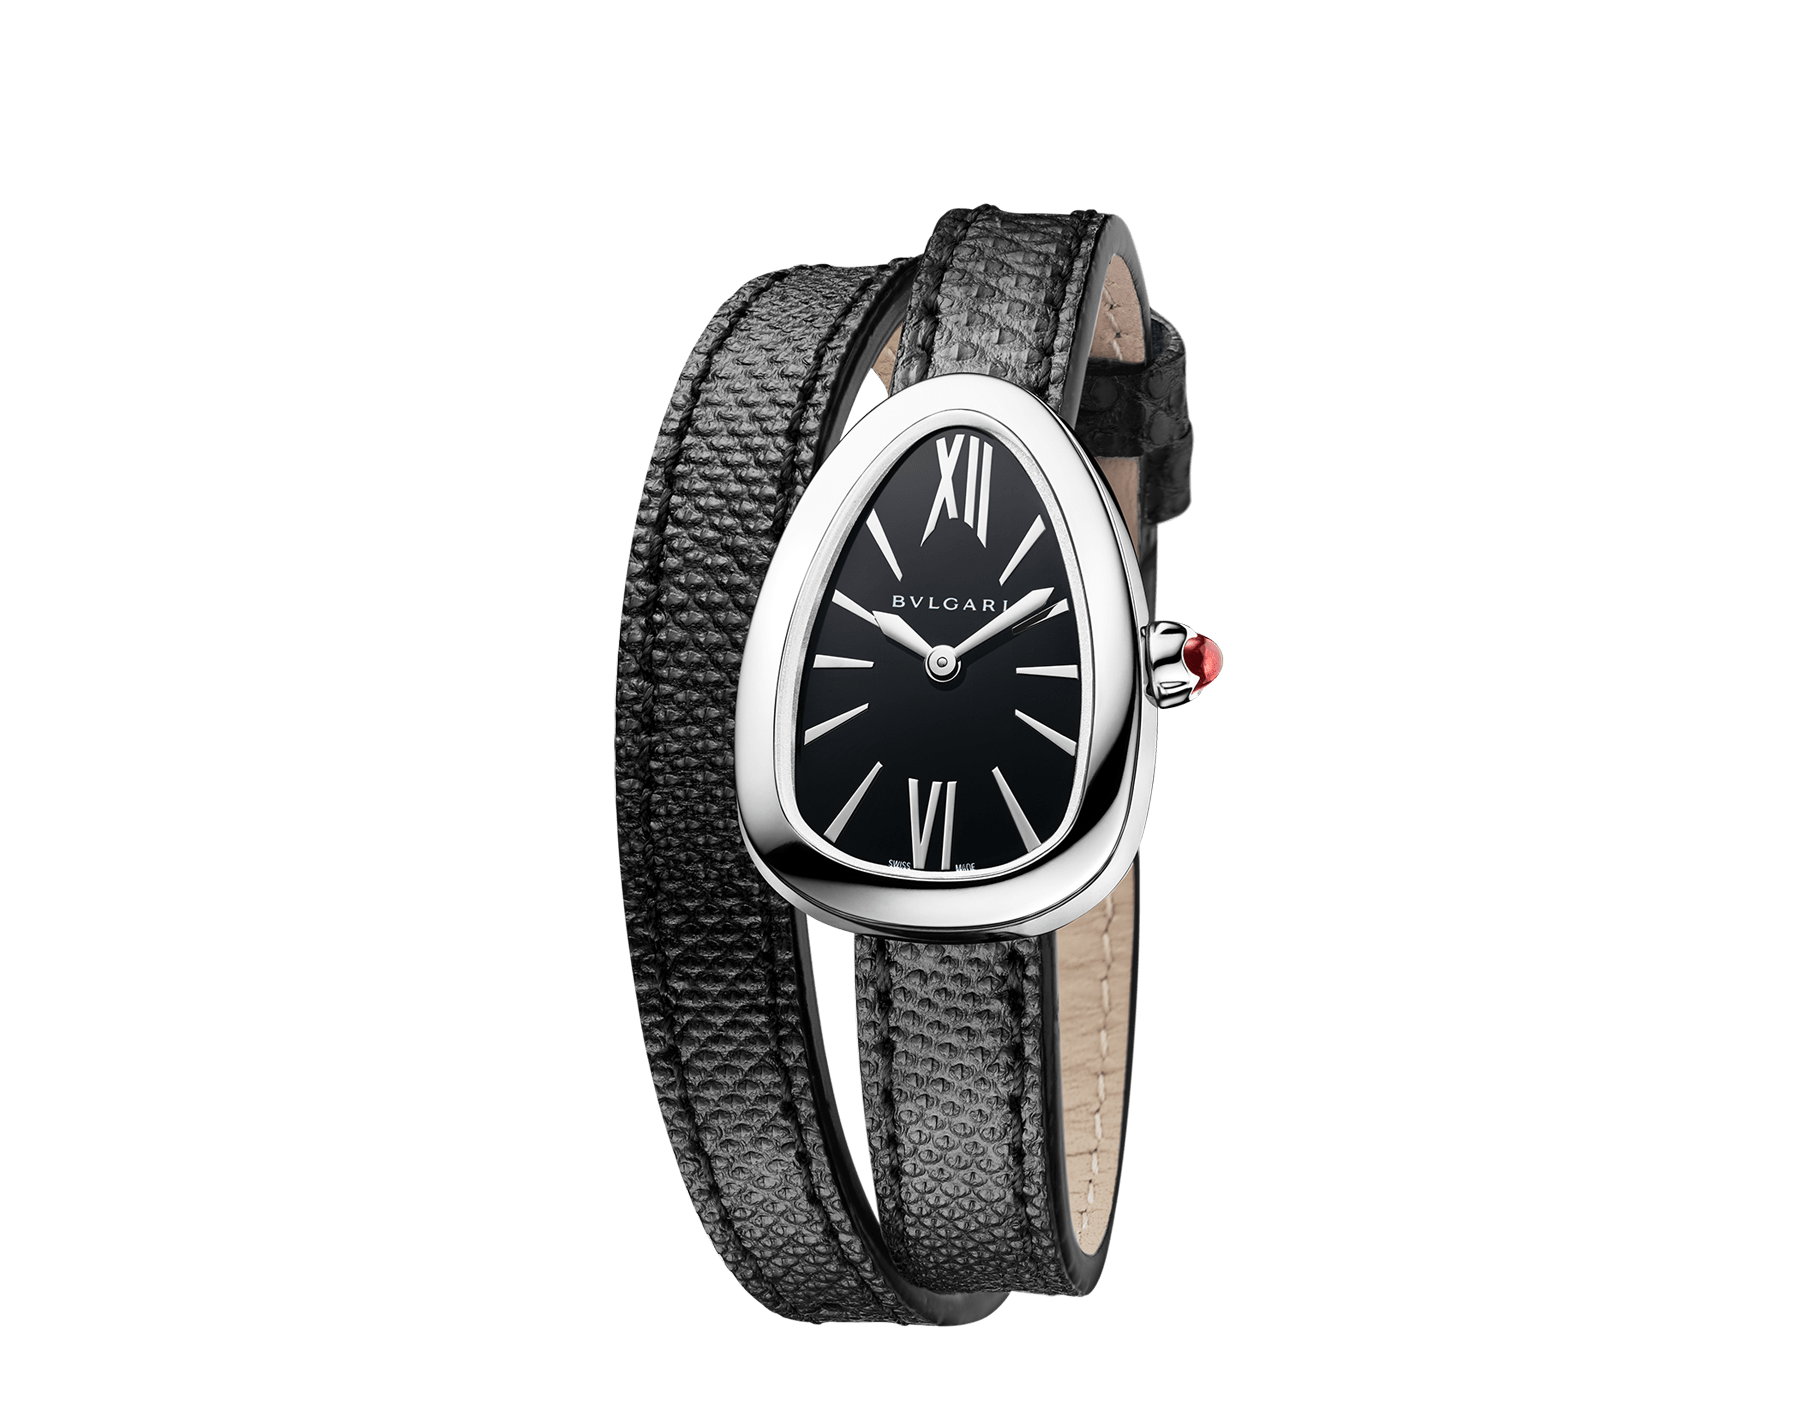 Serpenti watch with stainless steel case, black lacquered dial and interchangeable double spiral bracelet in black karung leather. 102782 image 2